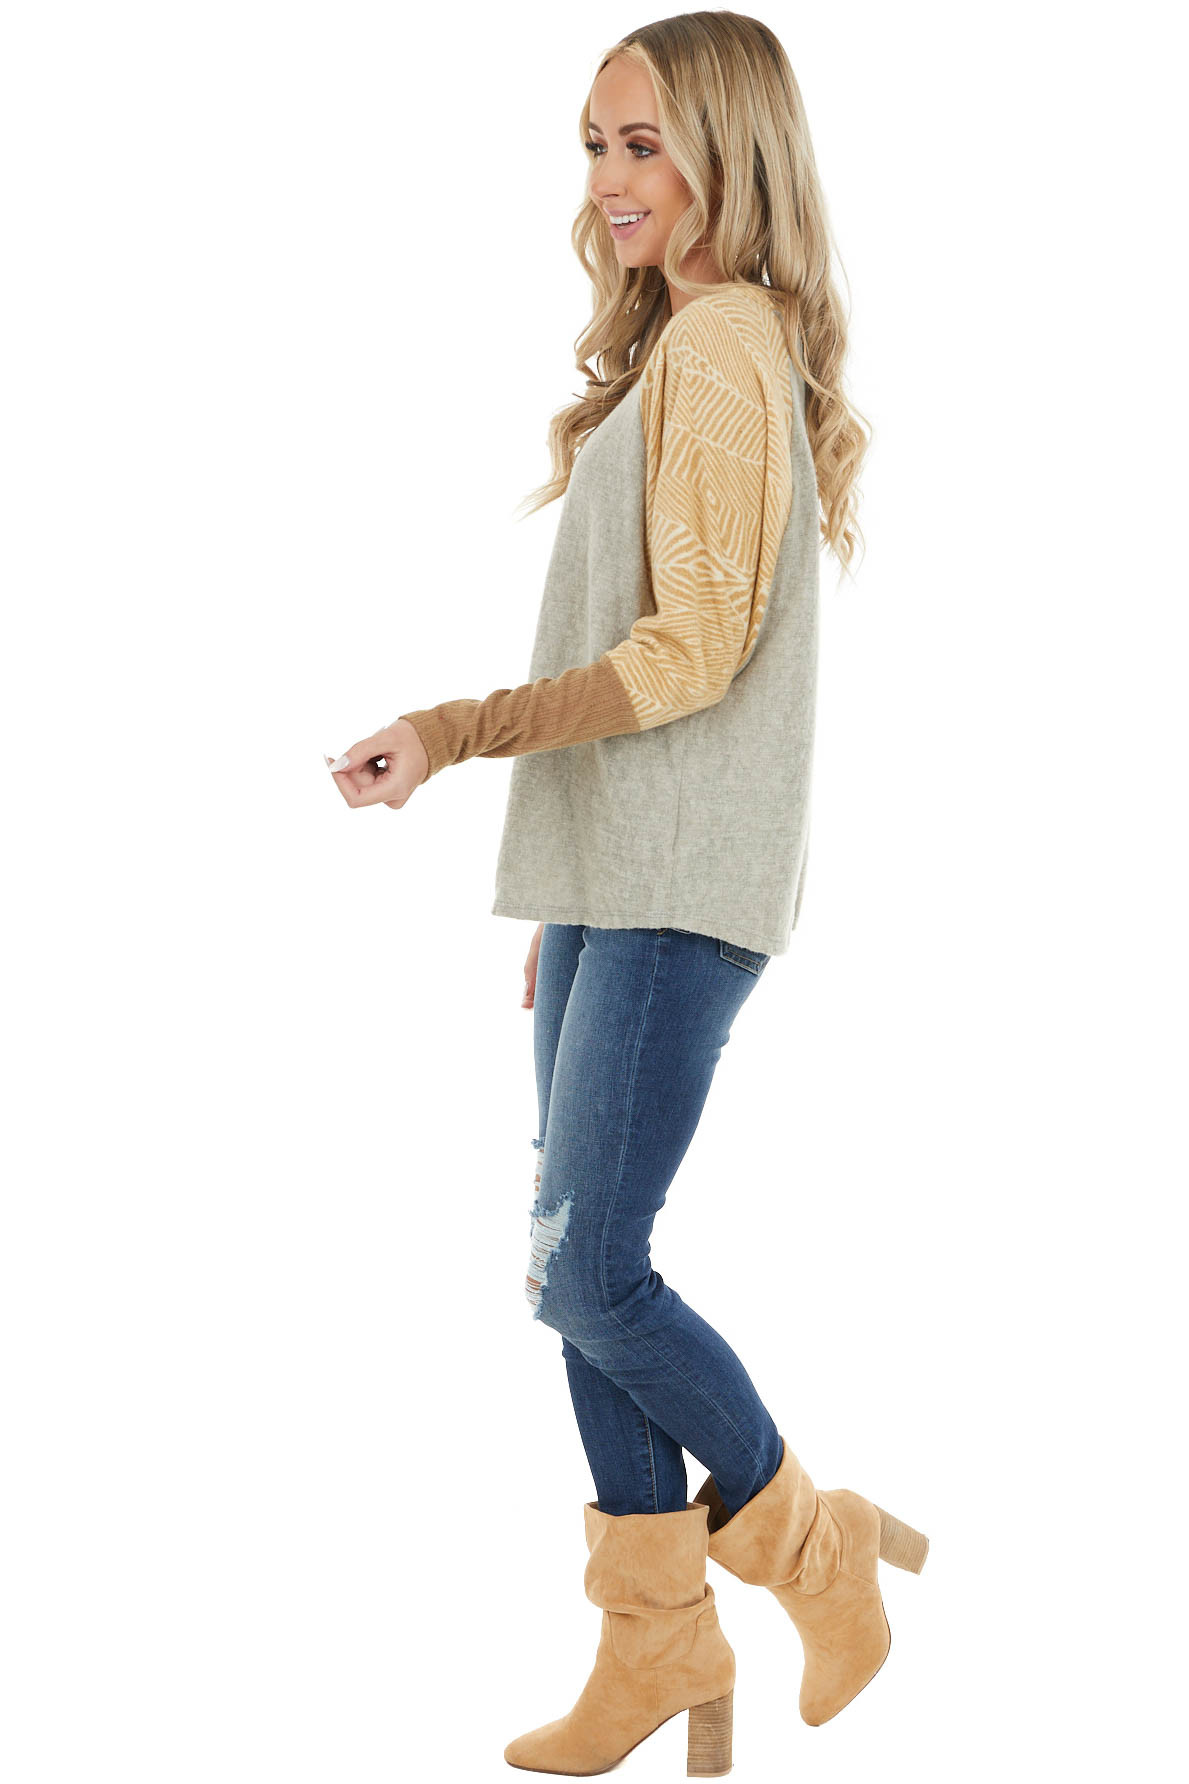 Khaki Soft Knit Top with Printed Dolman Raglan Sleeves